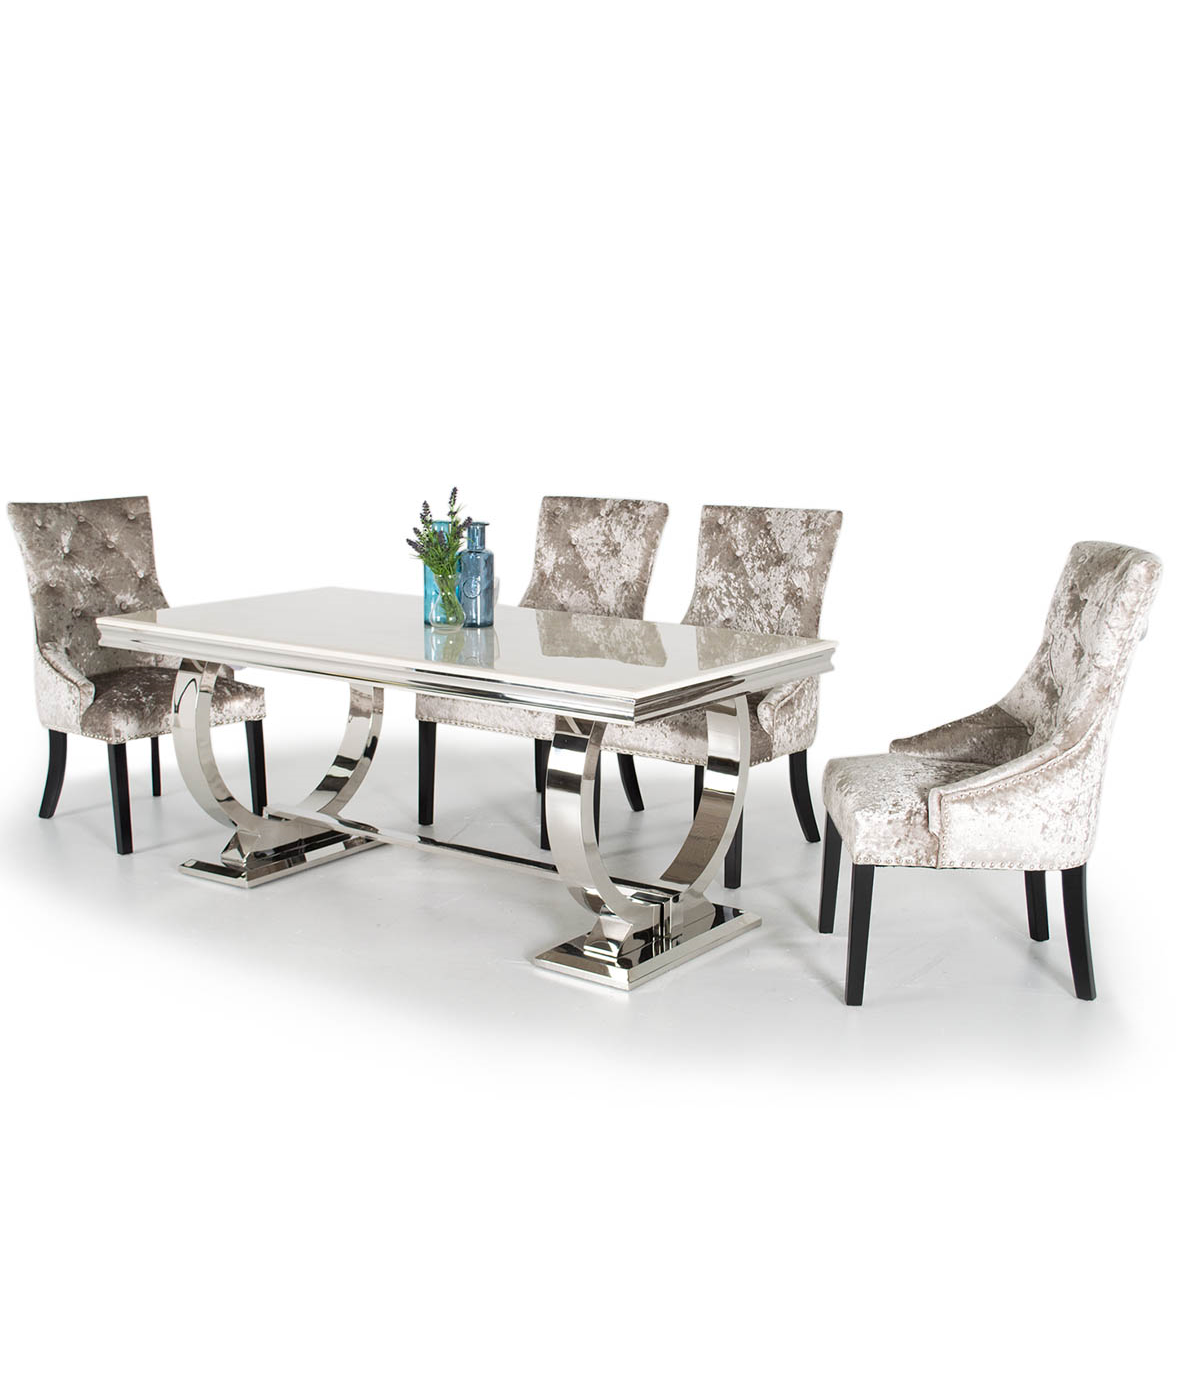 Venice Marble Dining Table With 6 Chairs 3 Colours Dining Table Marble Marble Dining Table Set Marble Tables Design